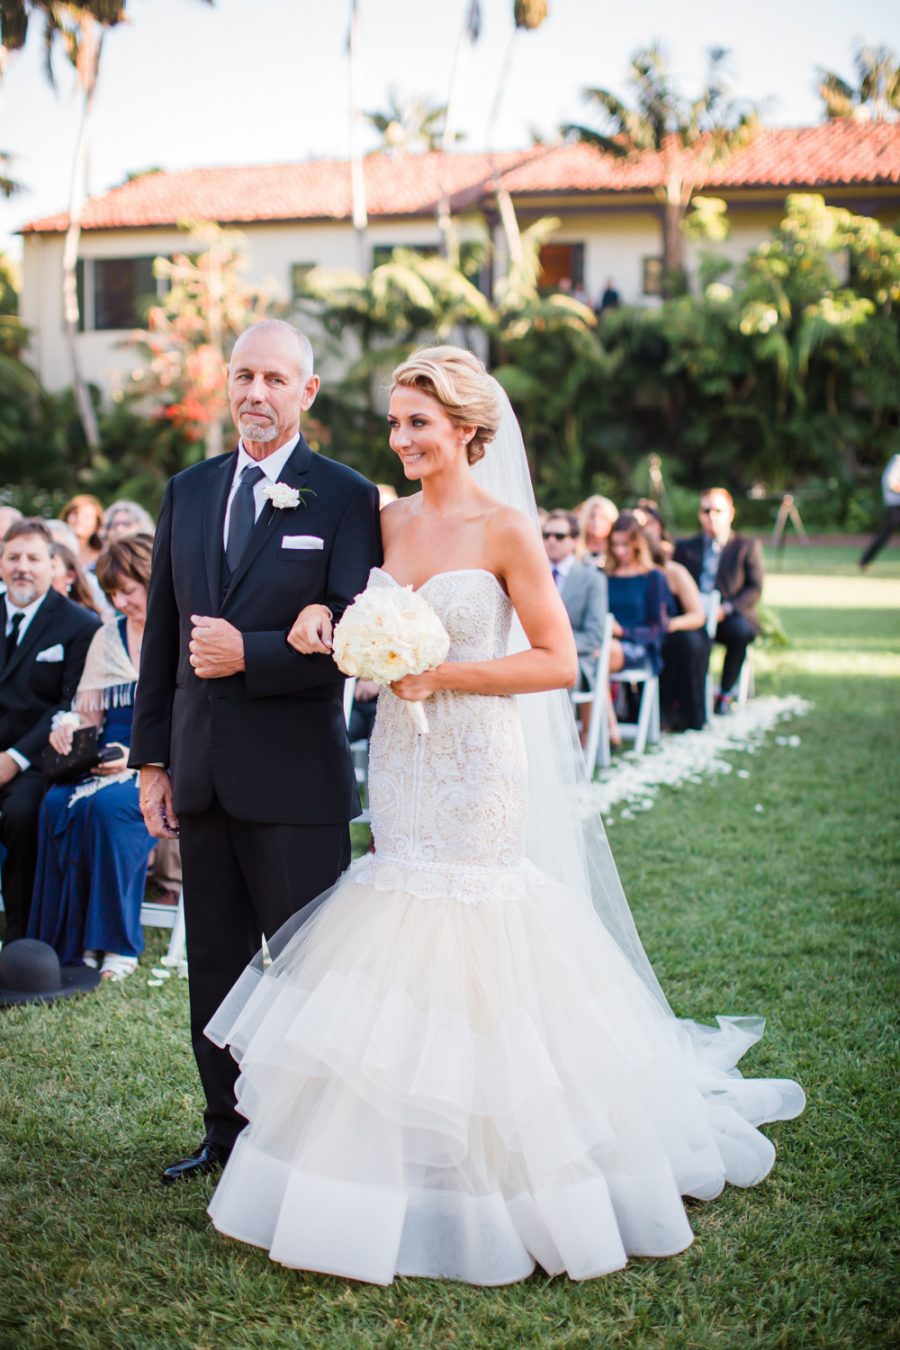 www.santabarbarawedding.com | Ann Johnson Events | Jessica Lewis | The Biltmore | Bride walking down aisle